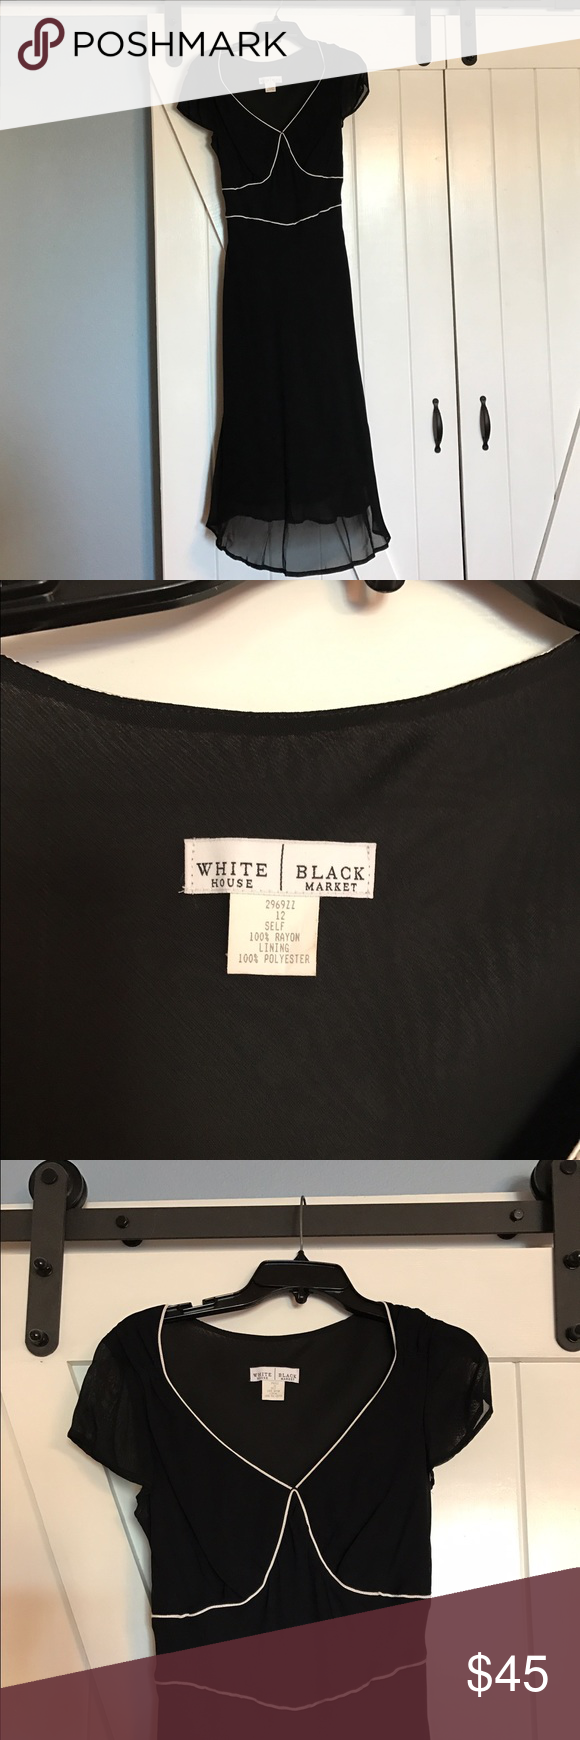 White House Black Market dress Gorgeous WHBM worn once. Has chiffon top layer that hits mid shin. Ties in back. No stains. Excellent condition White House Black Market Dresses